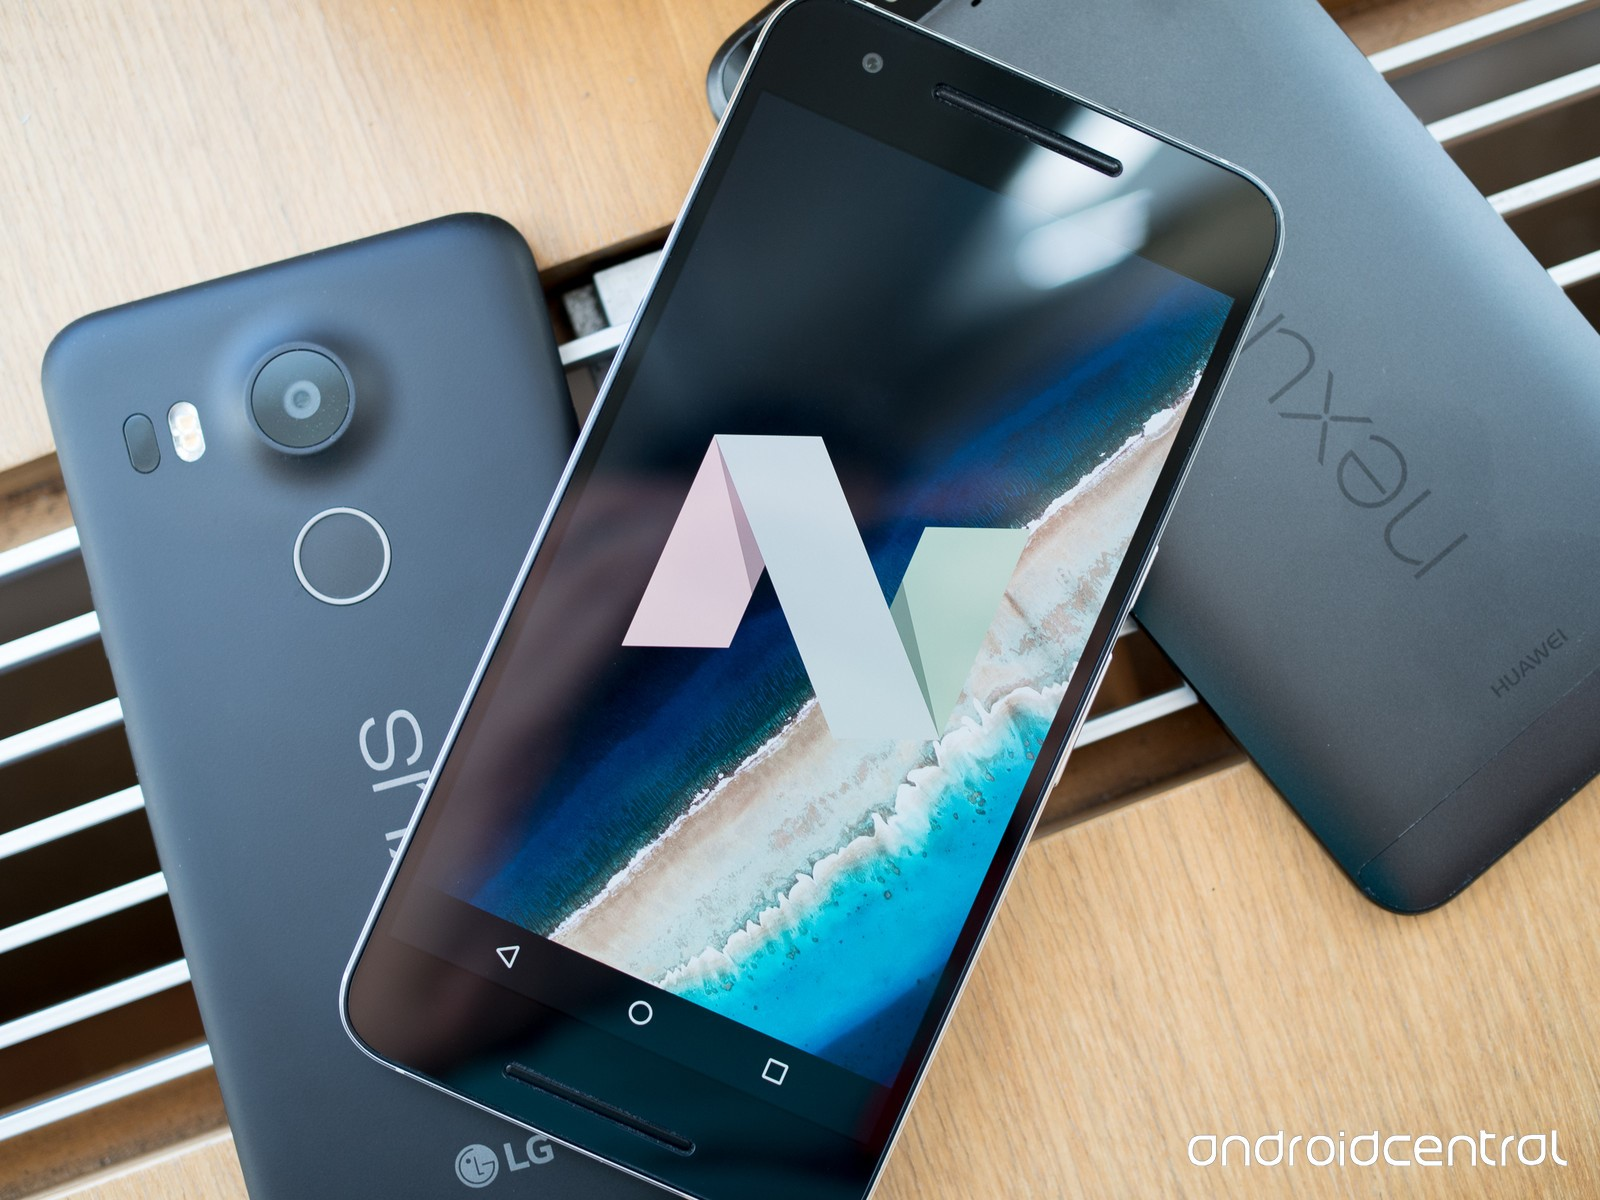 Android 7.0 Nougat available today for Nexus devices